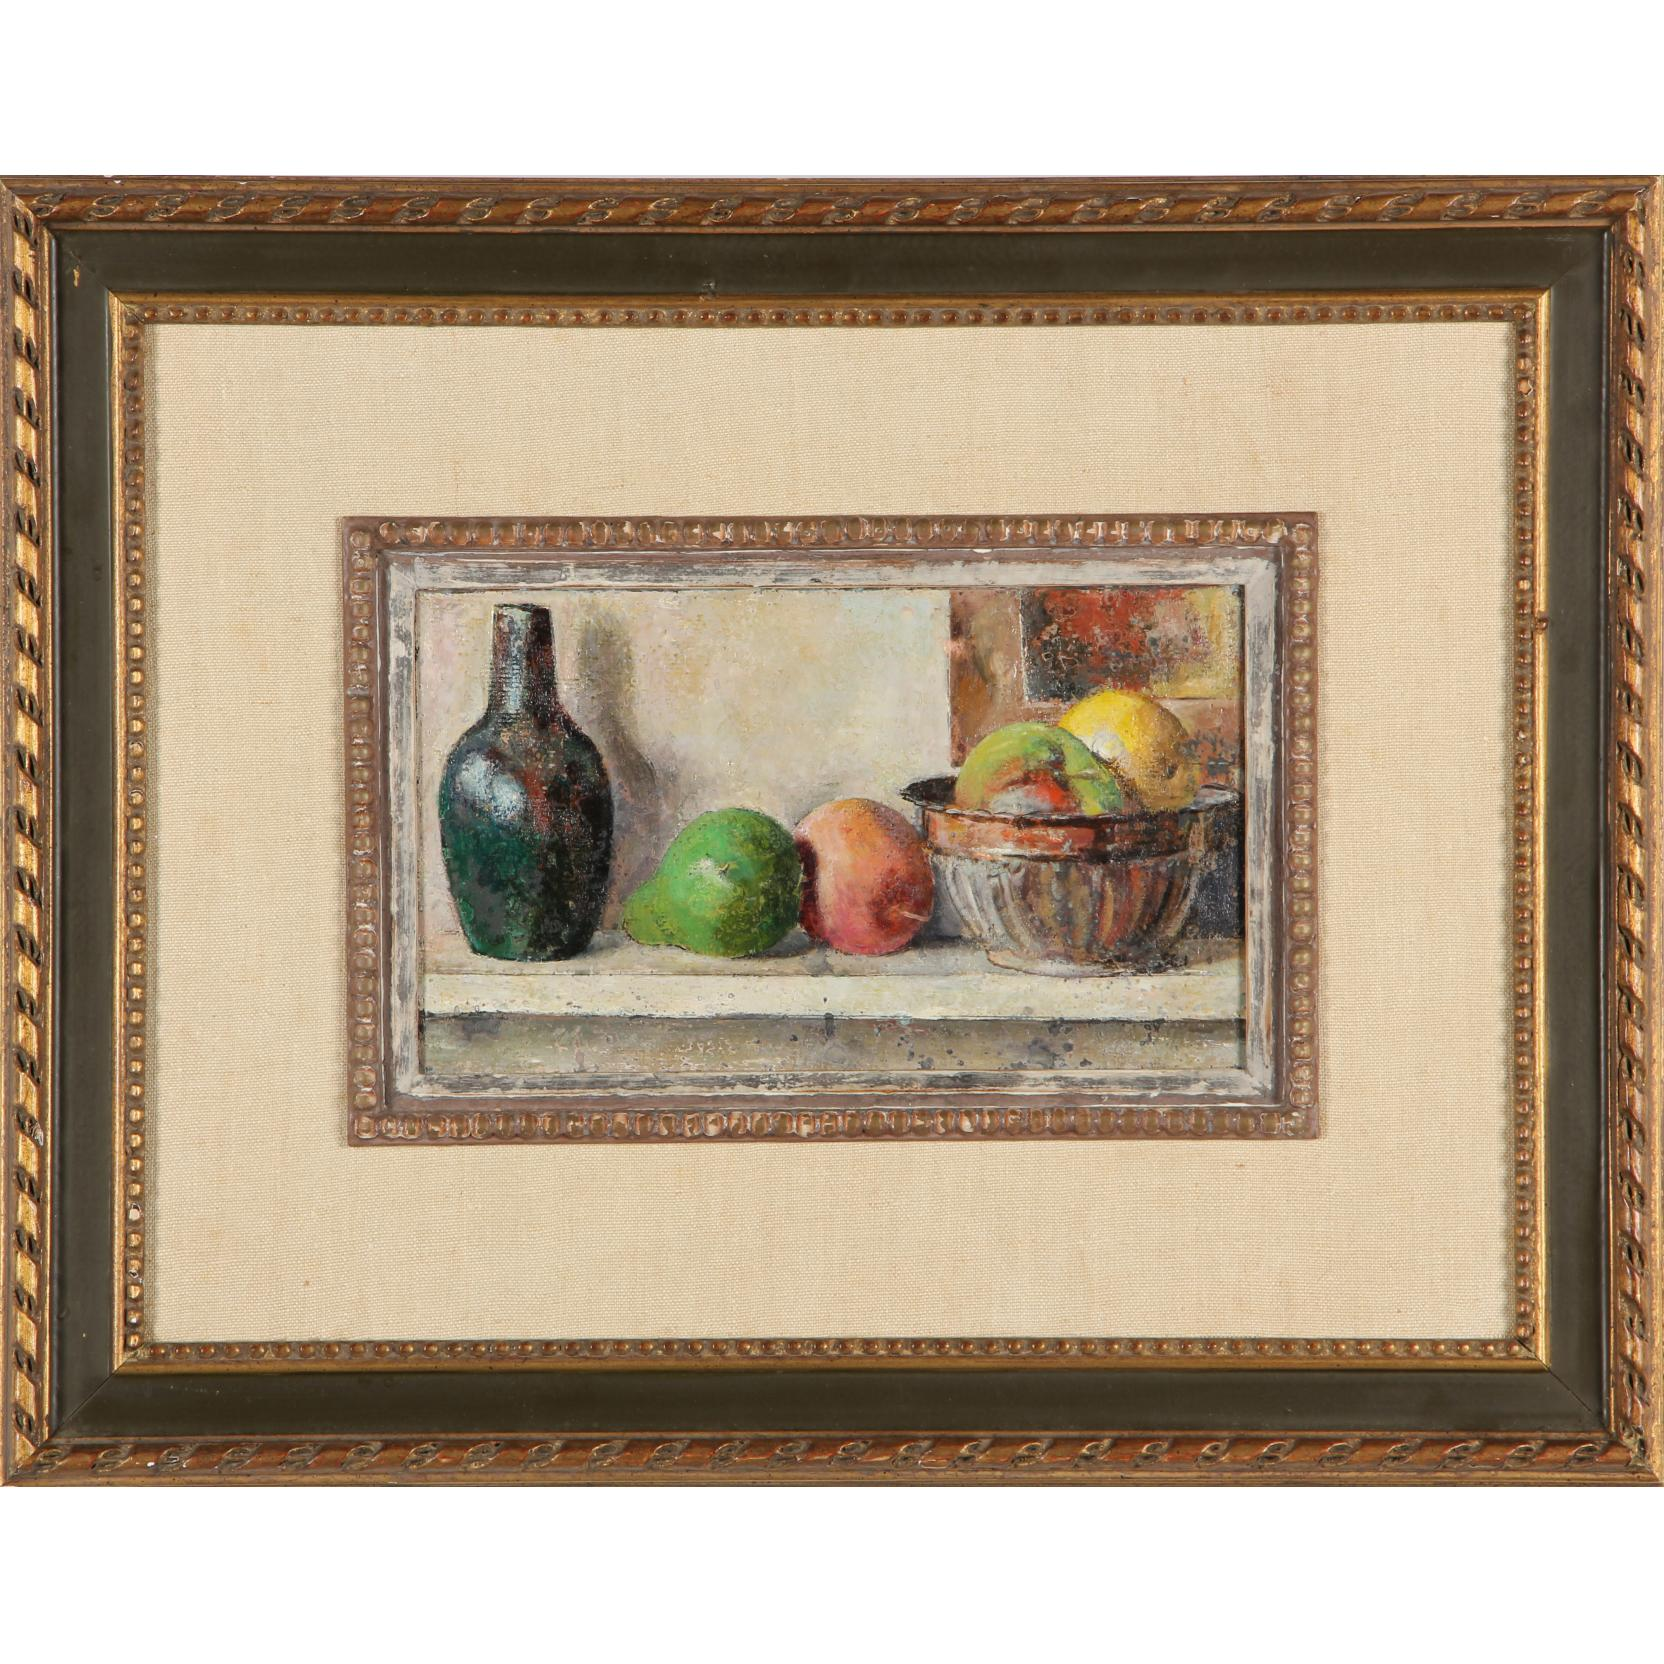 continental-school-20th-century-still-life-with-fruit